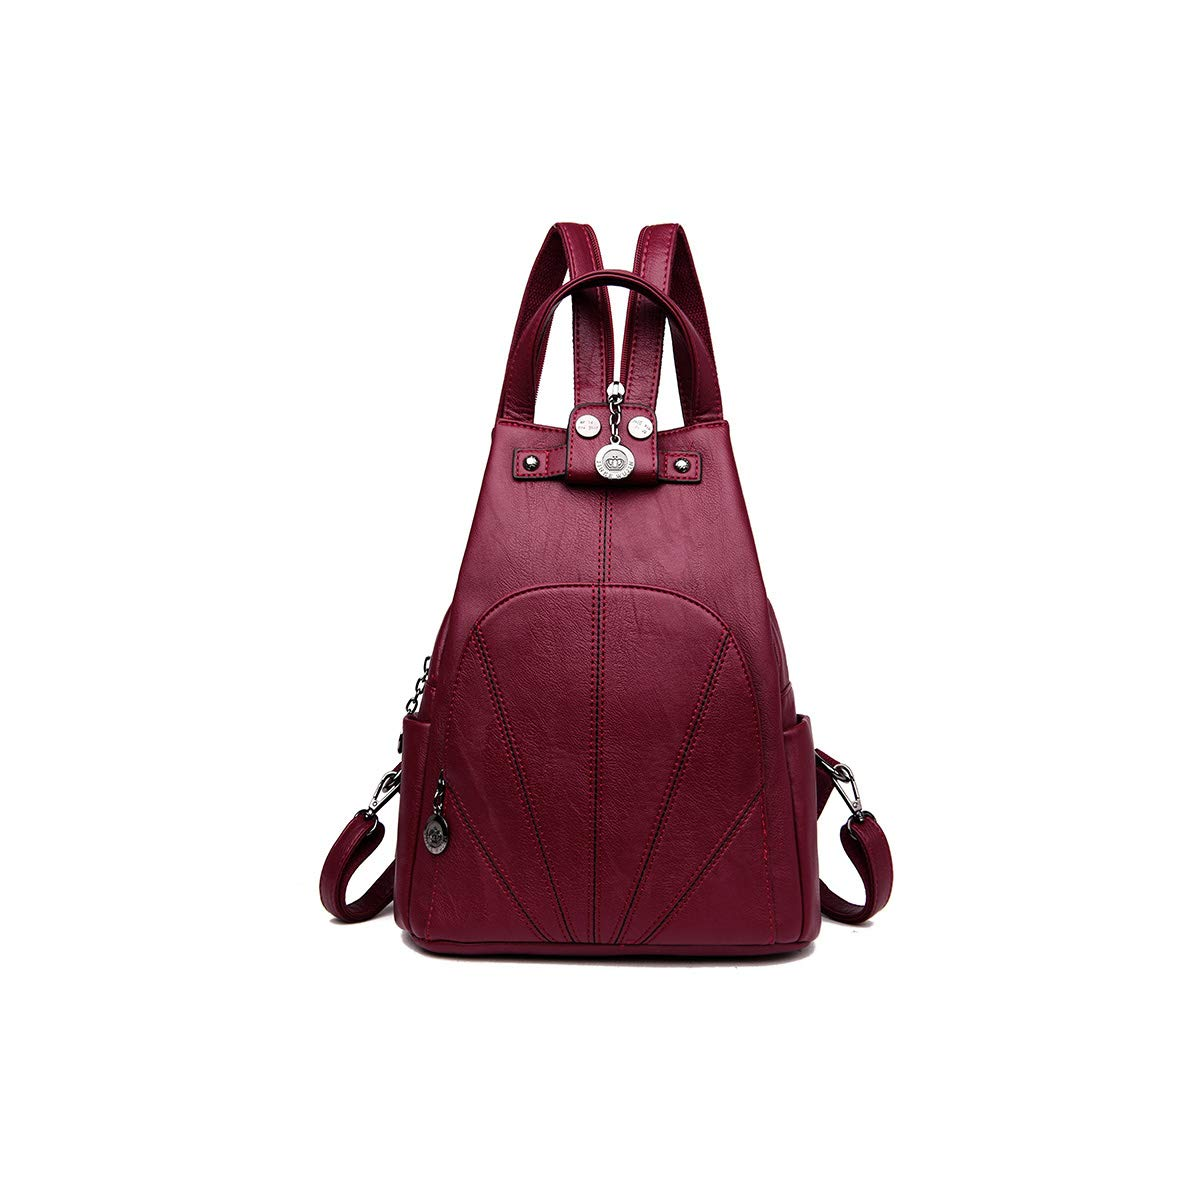 Two Styles of Three Colors Sleek and Simple. Haoyushangmao Girls Multi-Purpose Backpack for Daily Travel//Outdoor//Travel//School//Work//Fashion//Leisure PU Leather